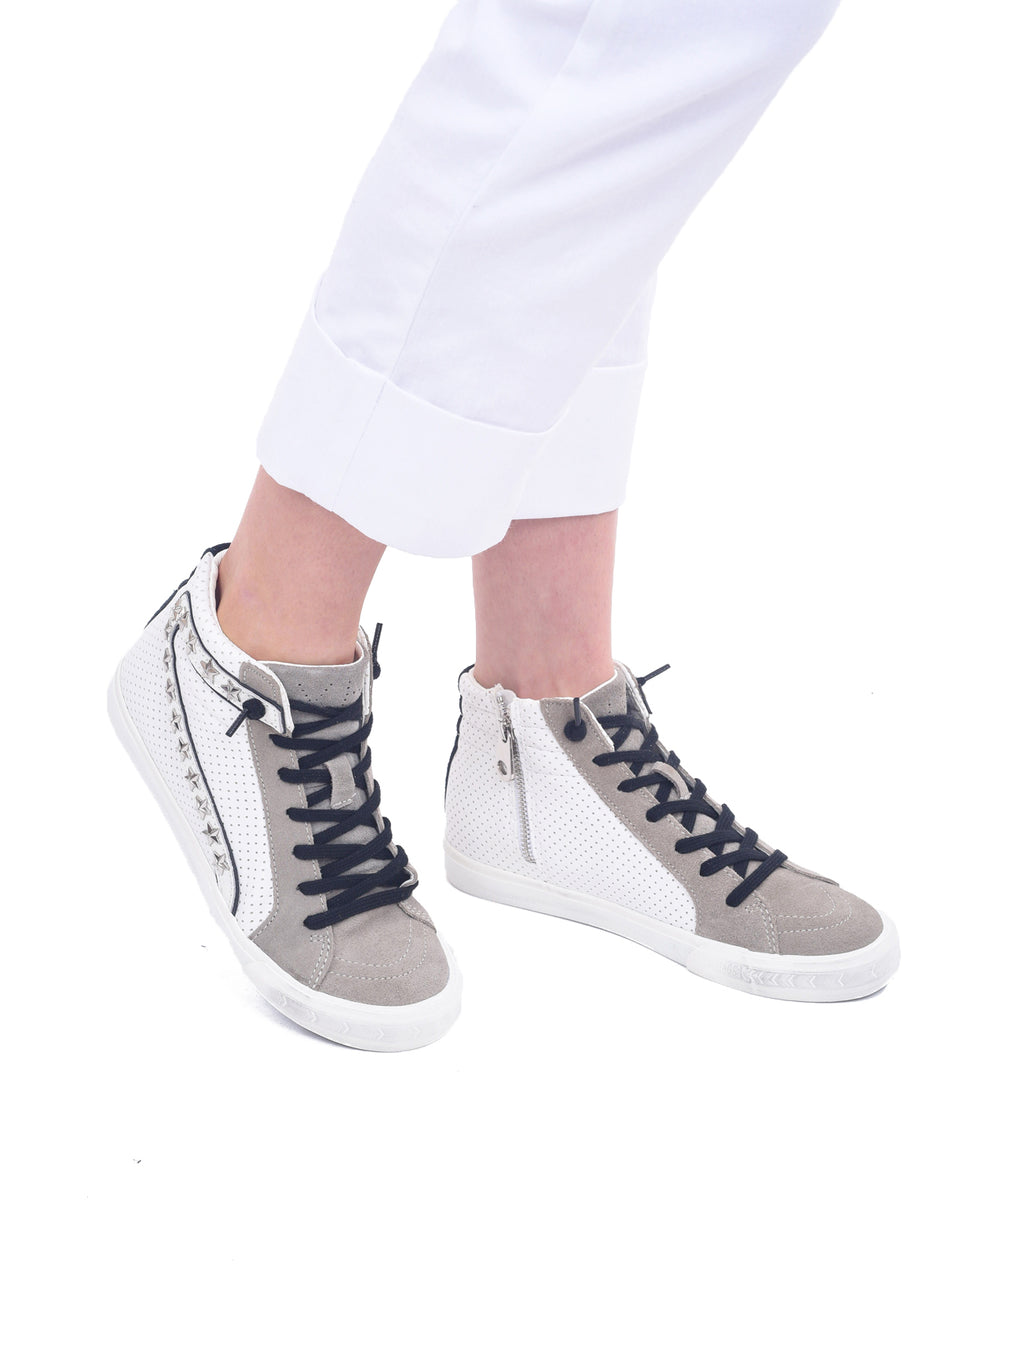 Vintage Havana Gadol High-Top Sneakers, White/Studs